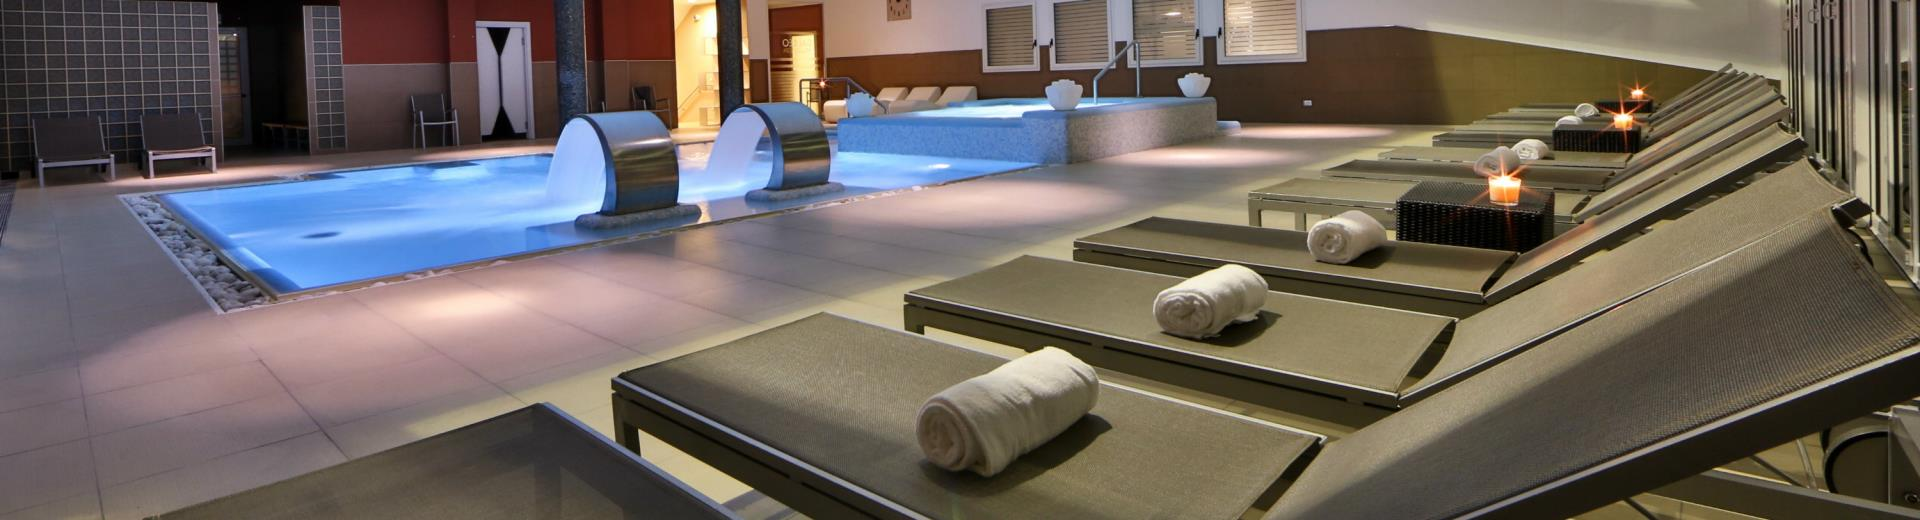 Dynamic heated swimming pool and spa: Book now!